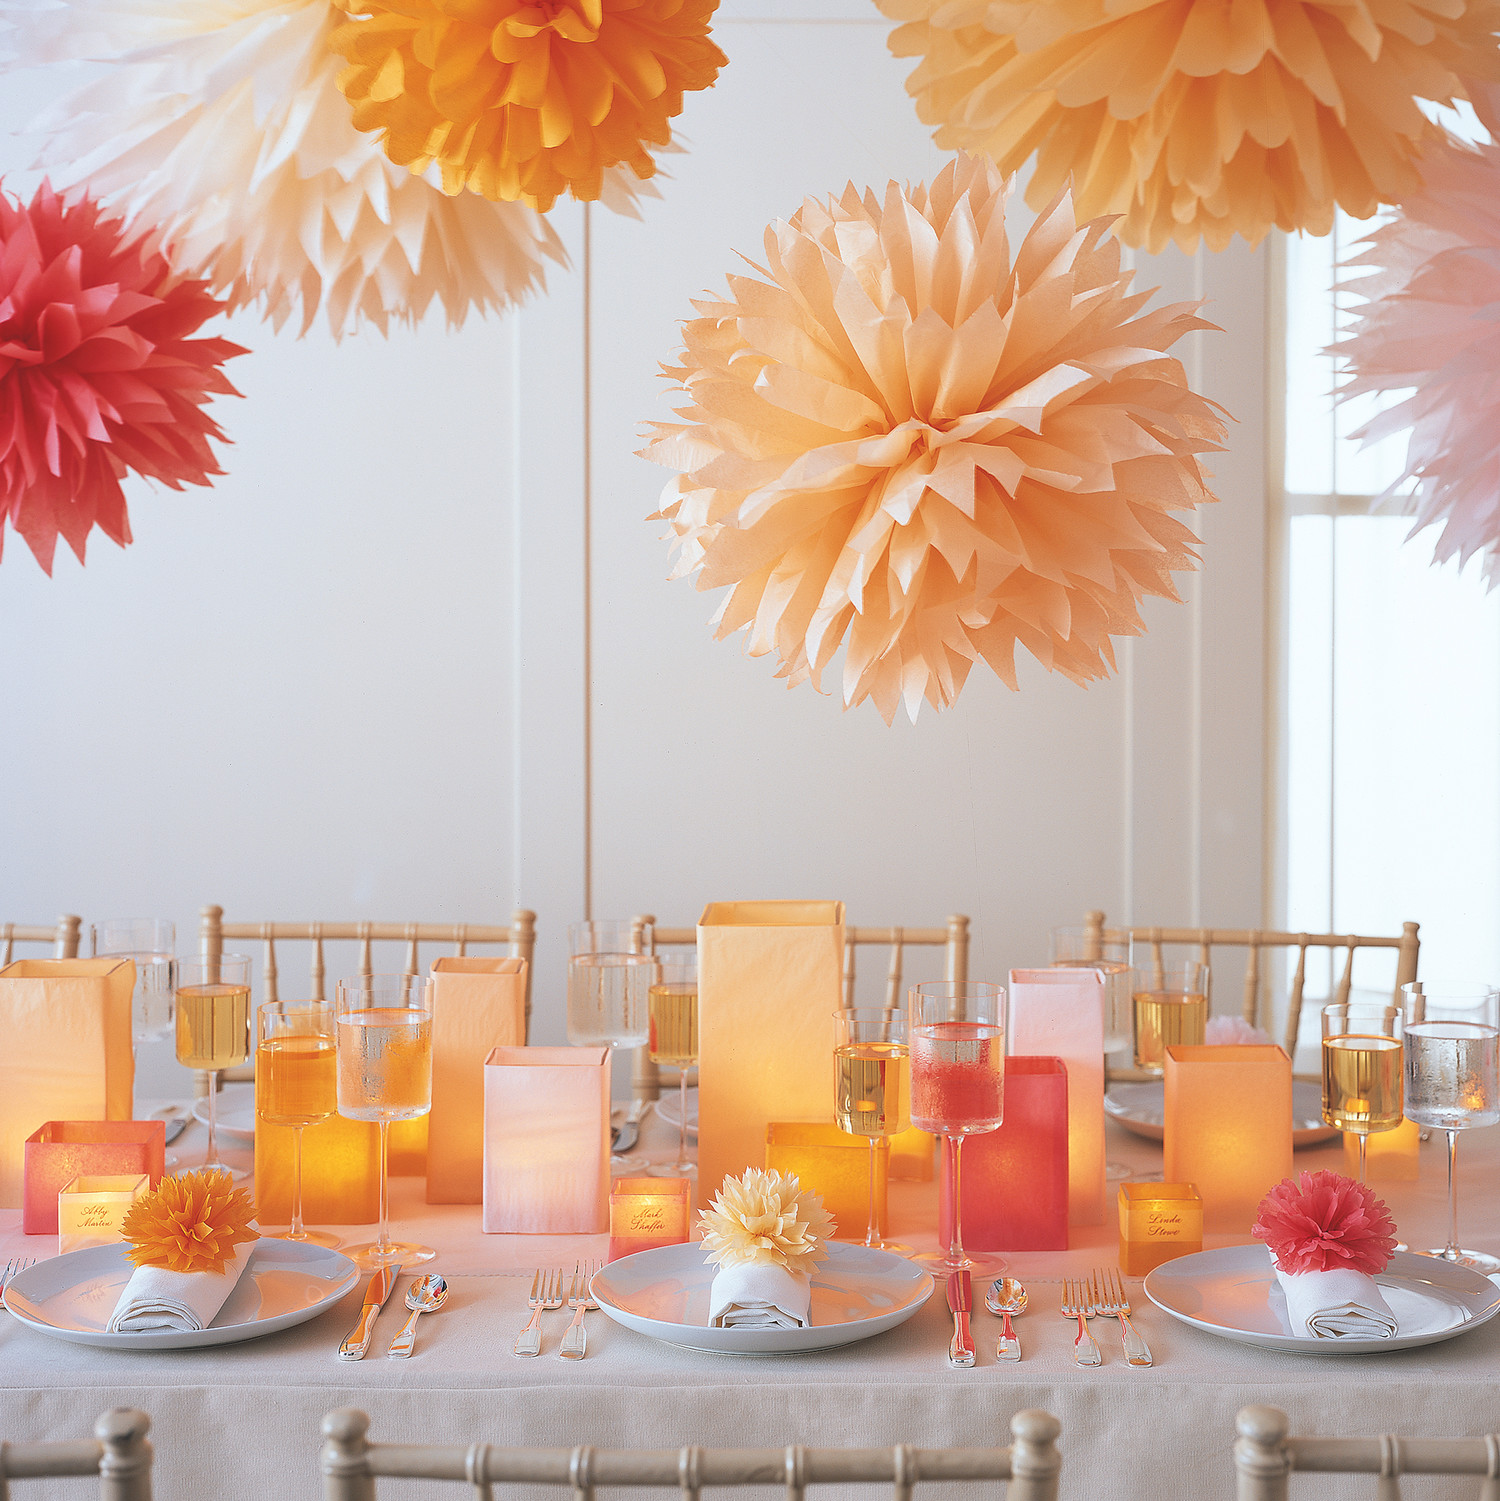 Ideas For Decoration: Pom-Poms And Luminarias & Video